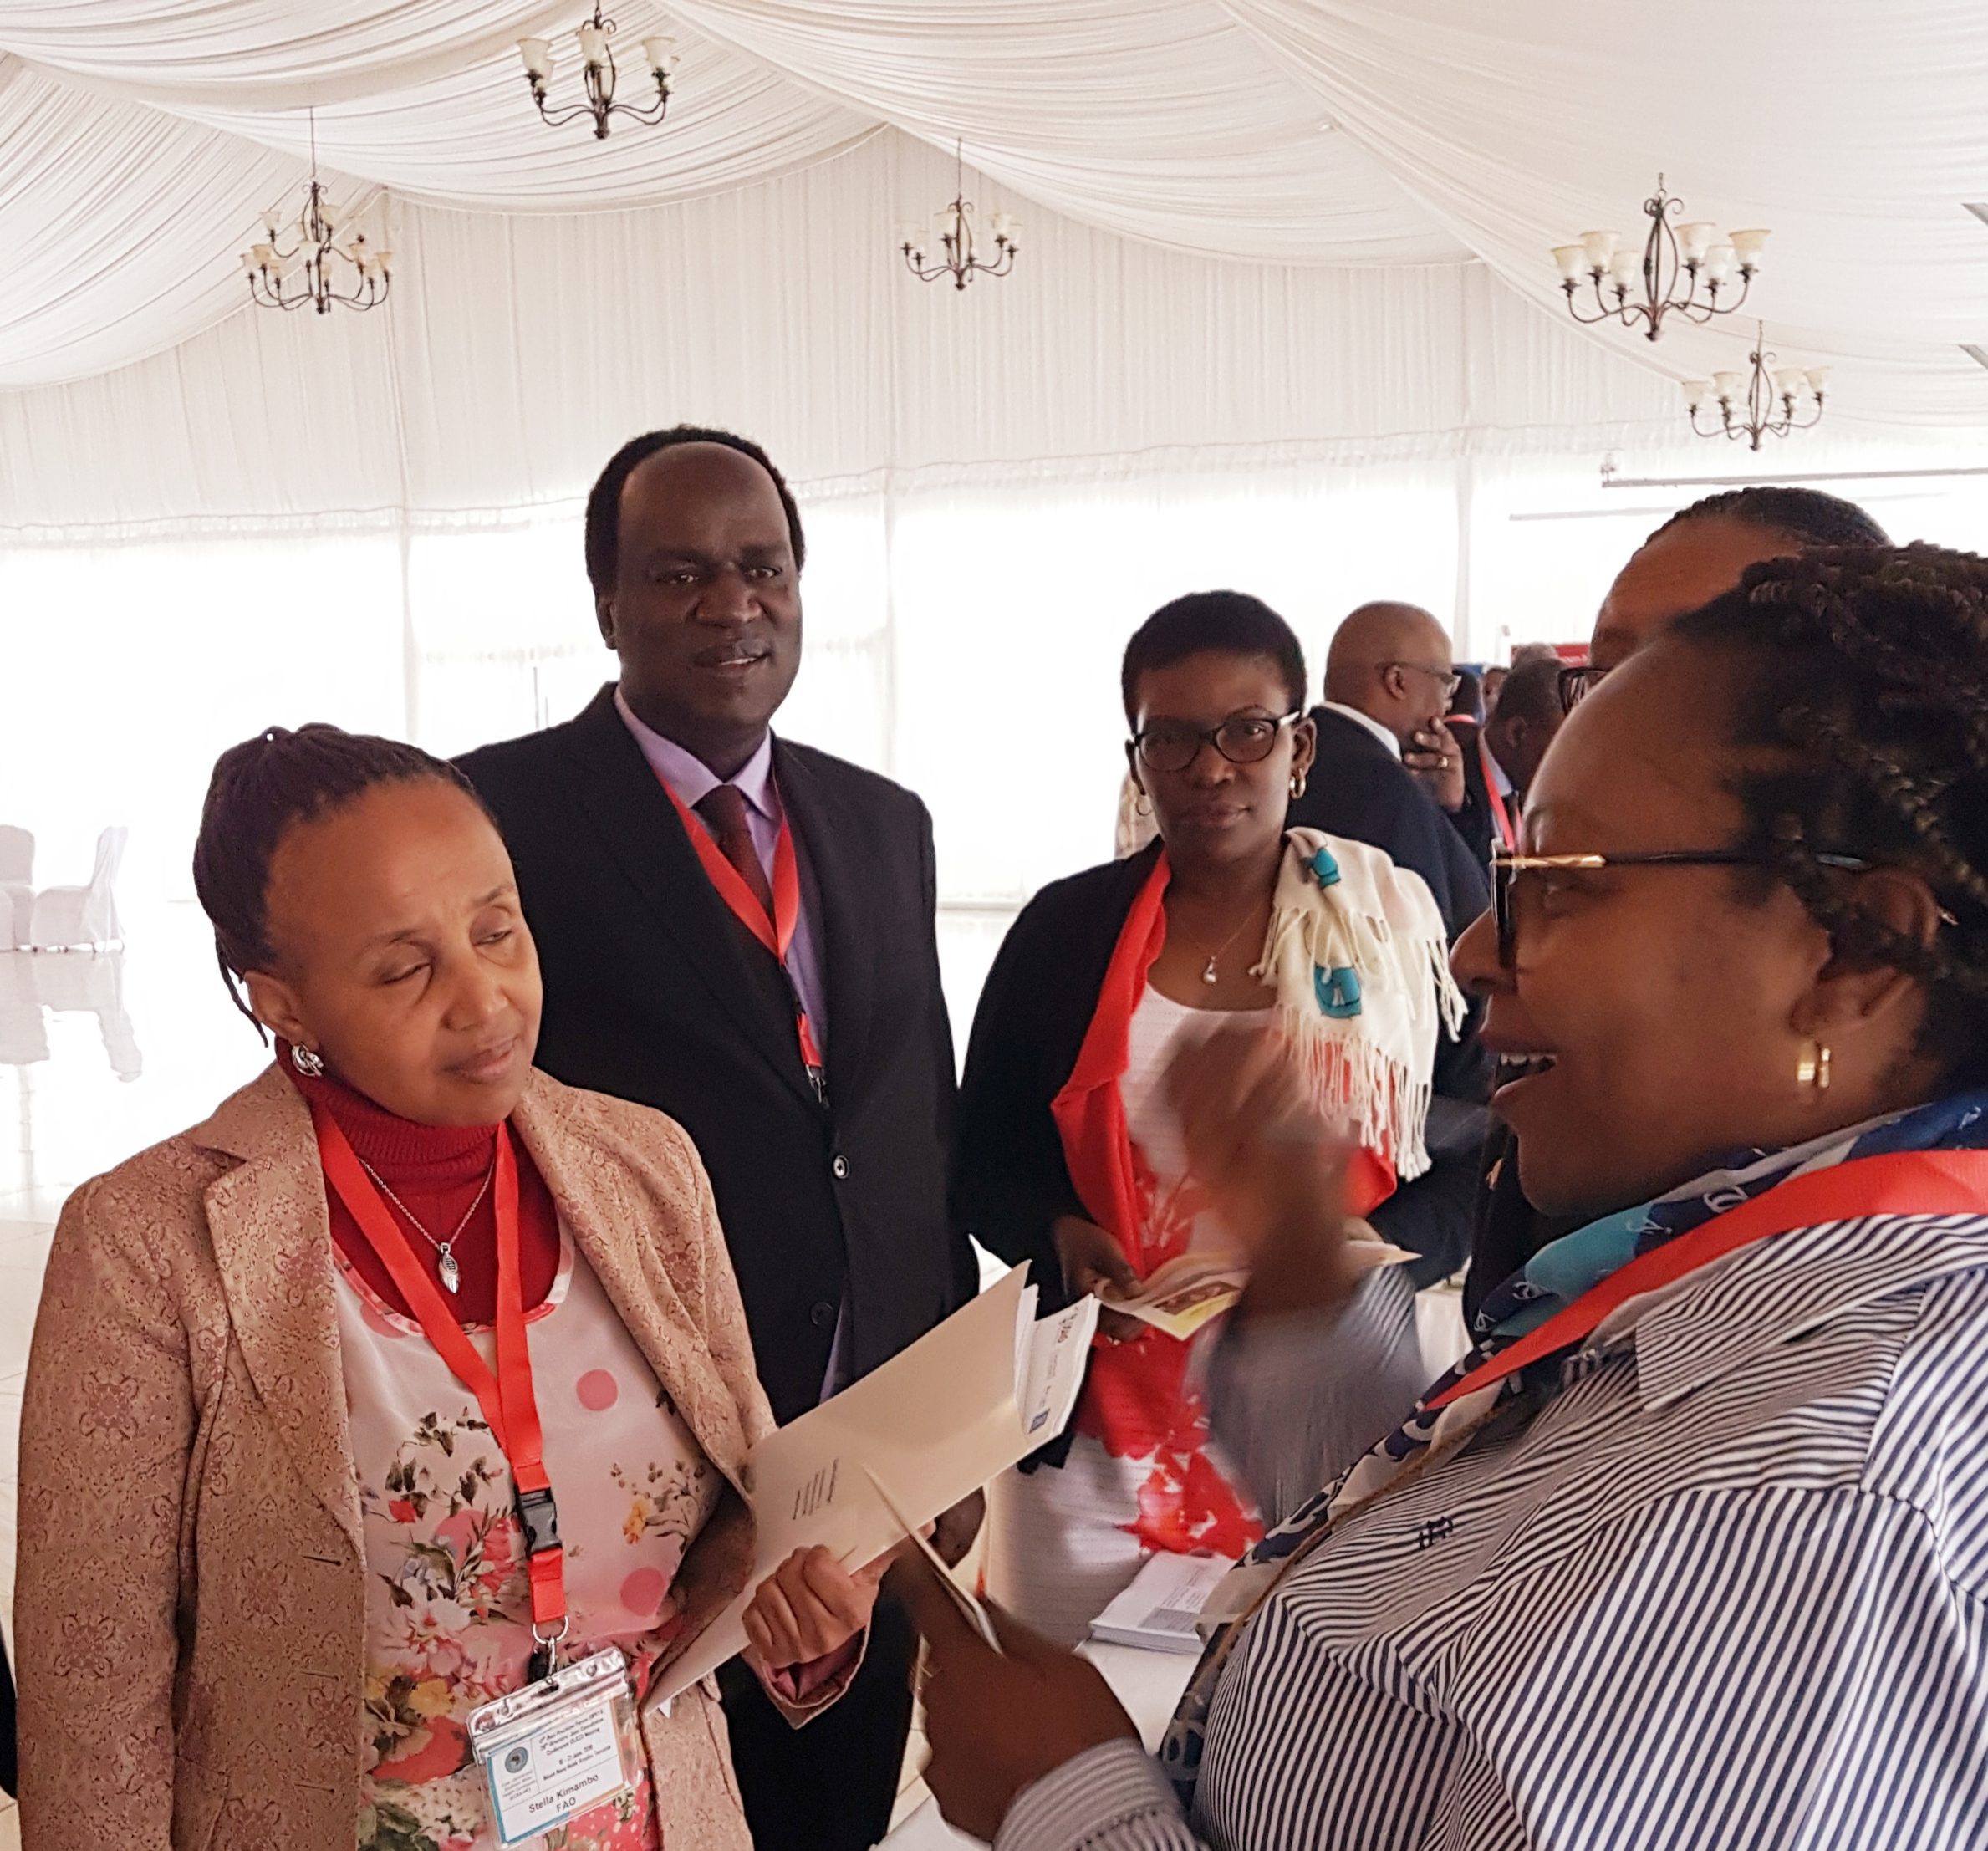 Dr. David Okello and Dr. Elsie Kiguli Malwadde chatting with participants at the ECSA Forum